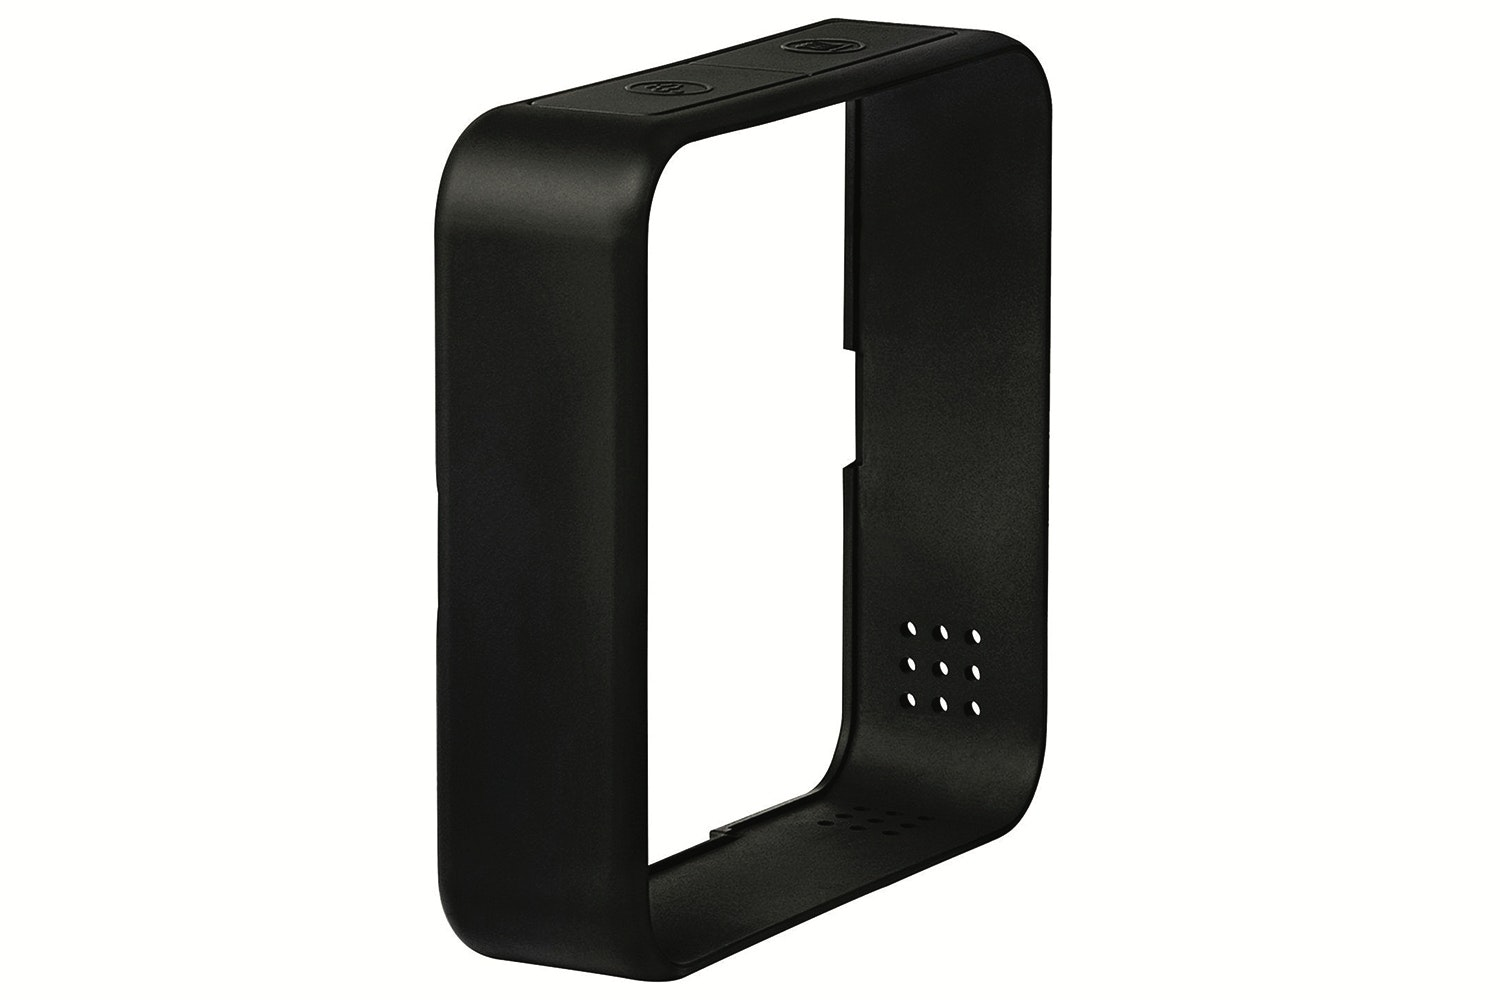 Hive Thermostat Frame | Black